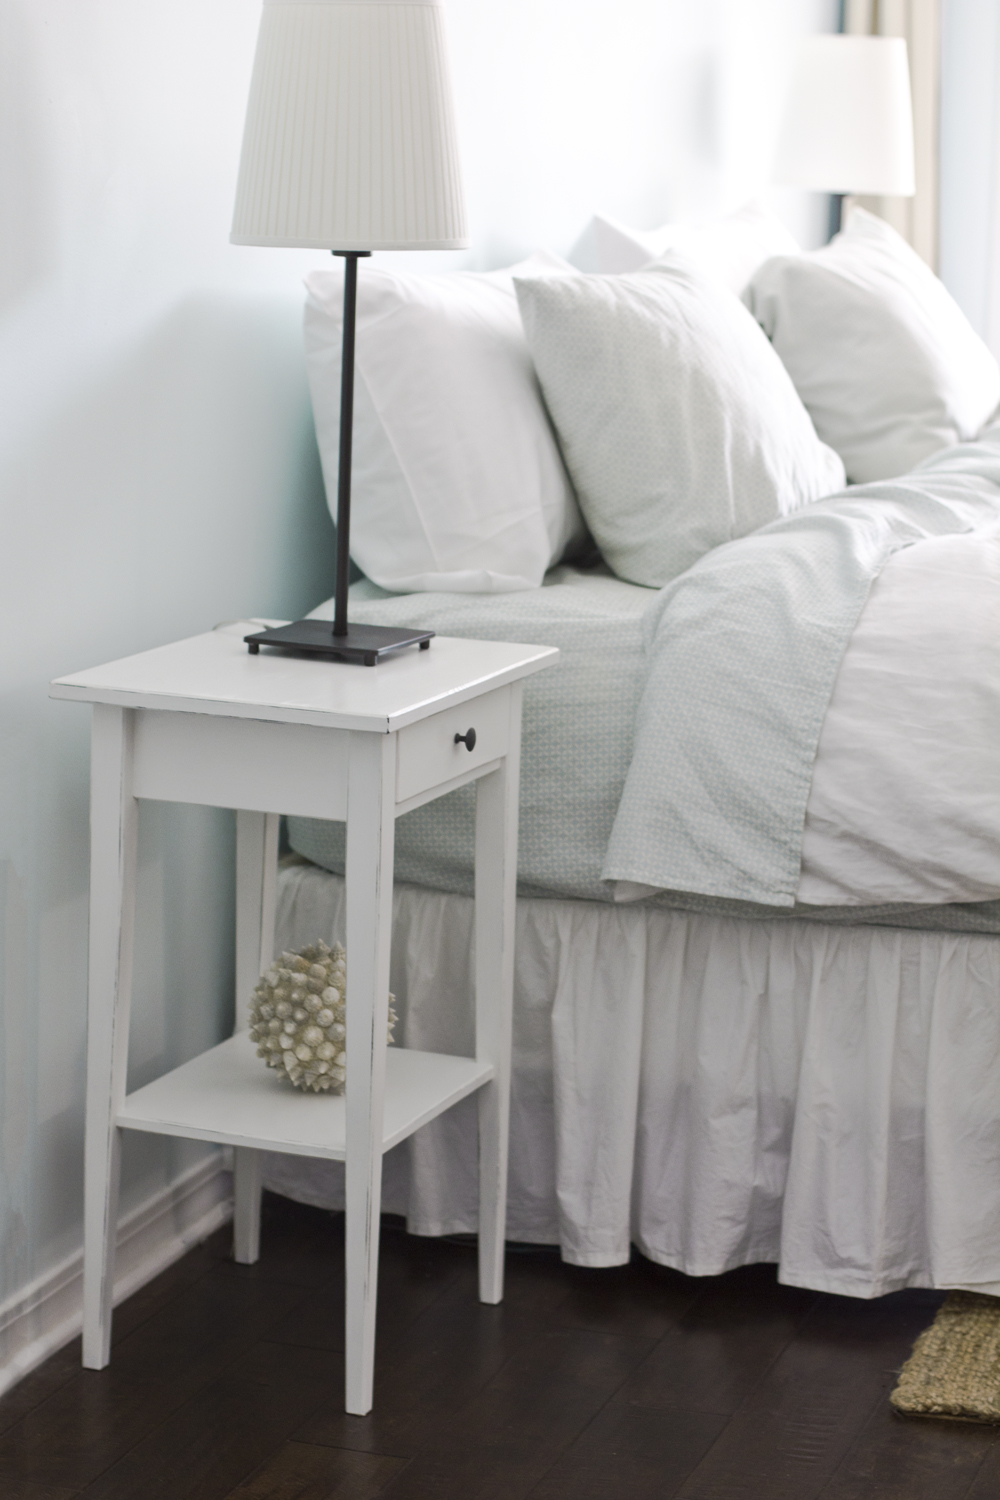 Ikea Rationell Unterschrank ~ Jenna Sue Ikea Hemnes nightstand hack